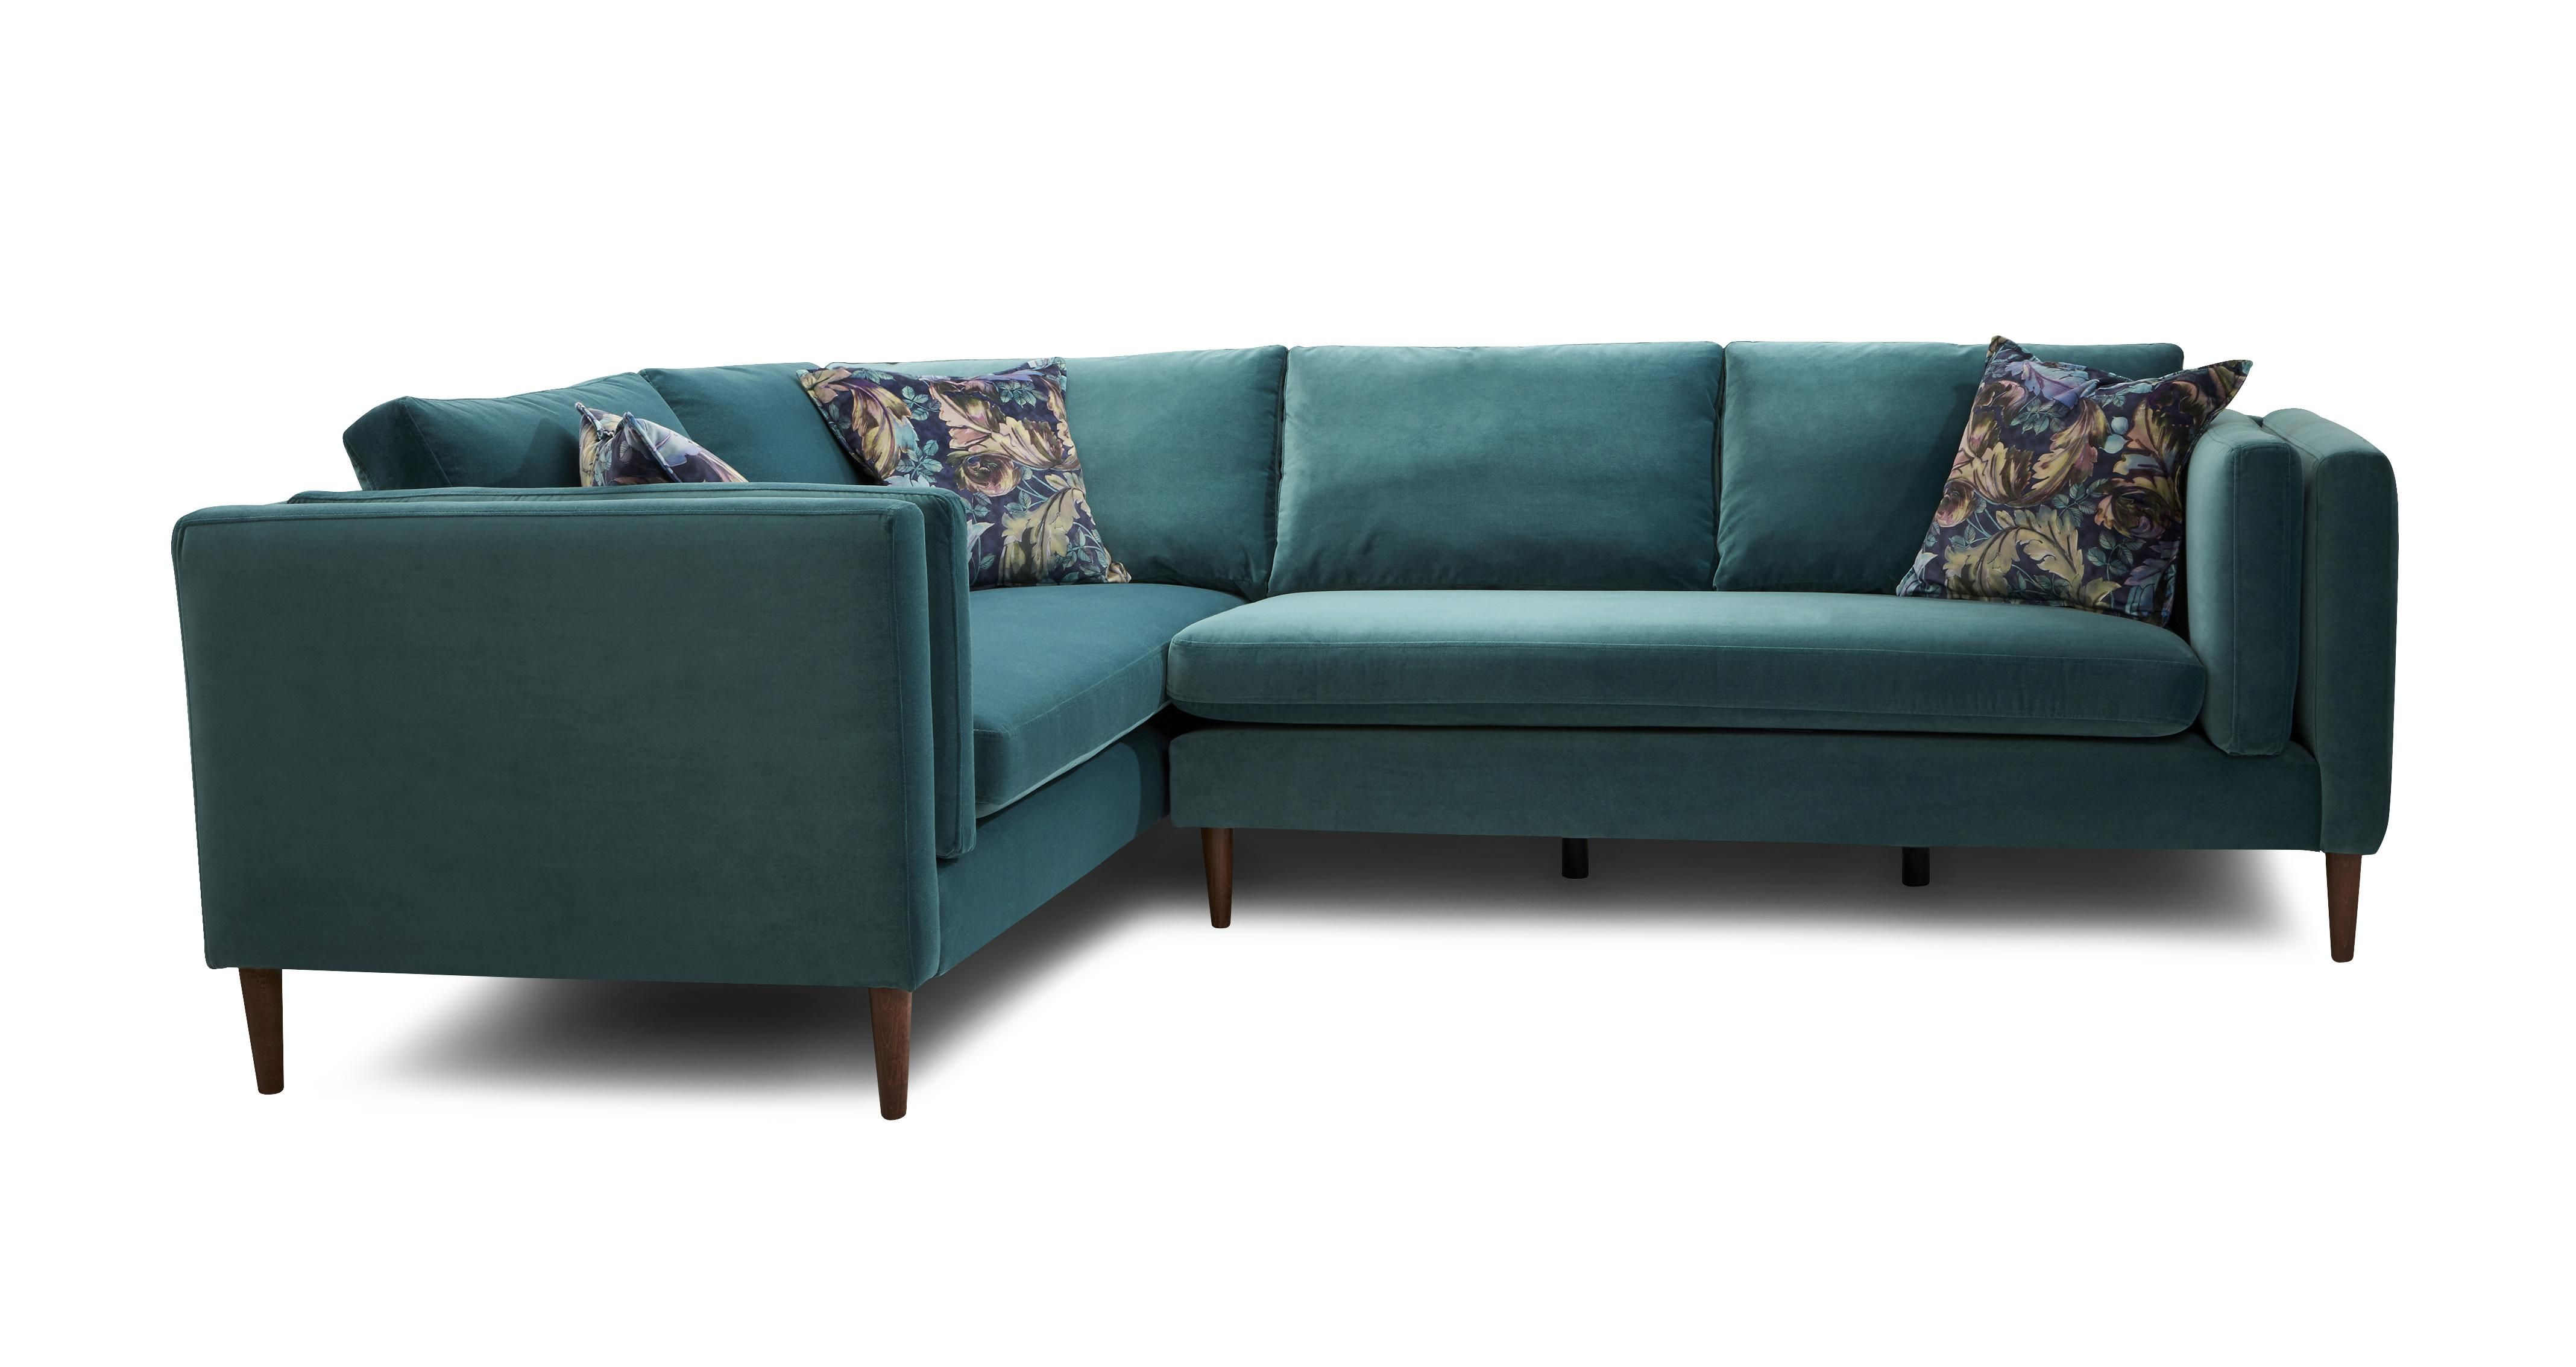 Teal Velvet Corner Sofa   Best Collections of Sofas and ...